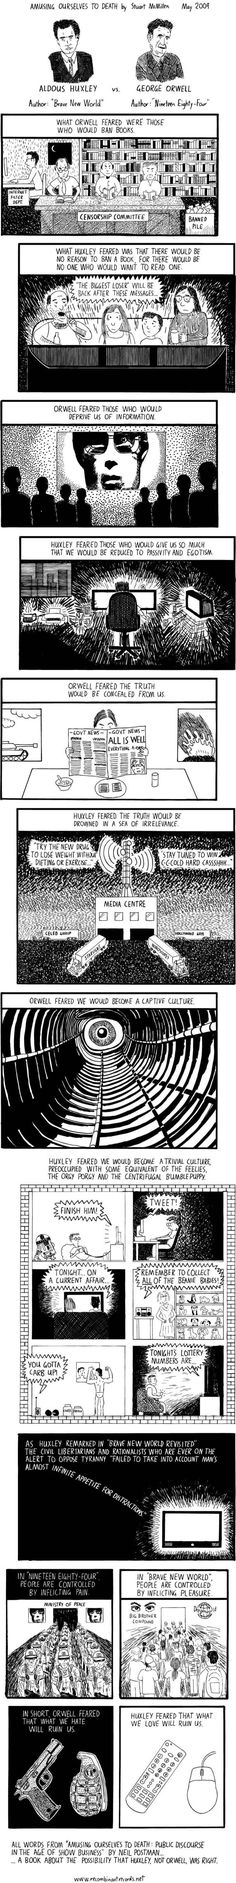 Amusing Ourselves to Death by Neil Postman, on Orwell v Huxley, art by Stuart McMillen May 2009